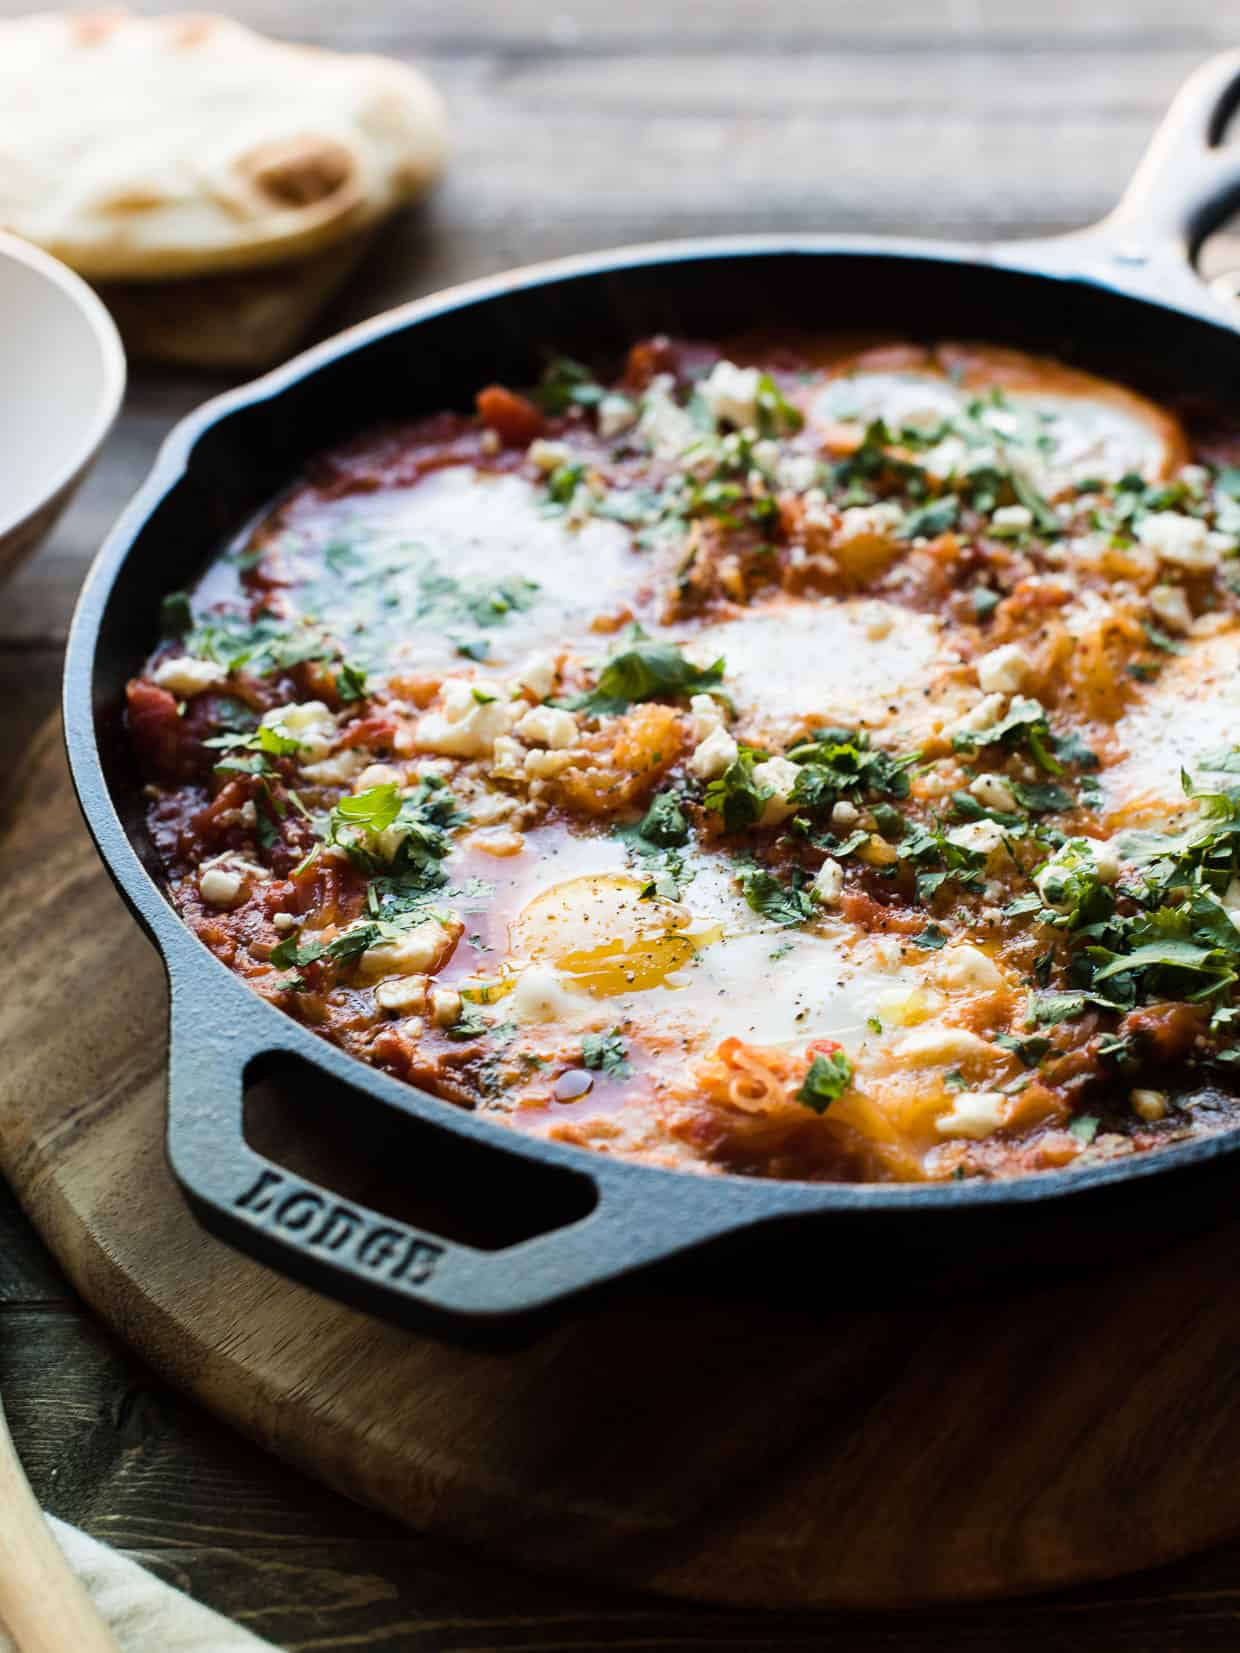 Close up view of a cast iron pan of Spaghetti Squash Shakshuka.